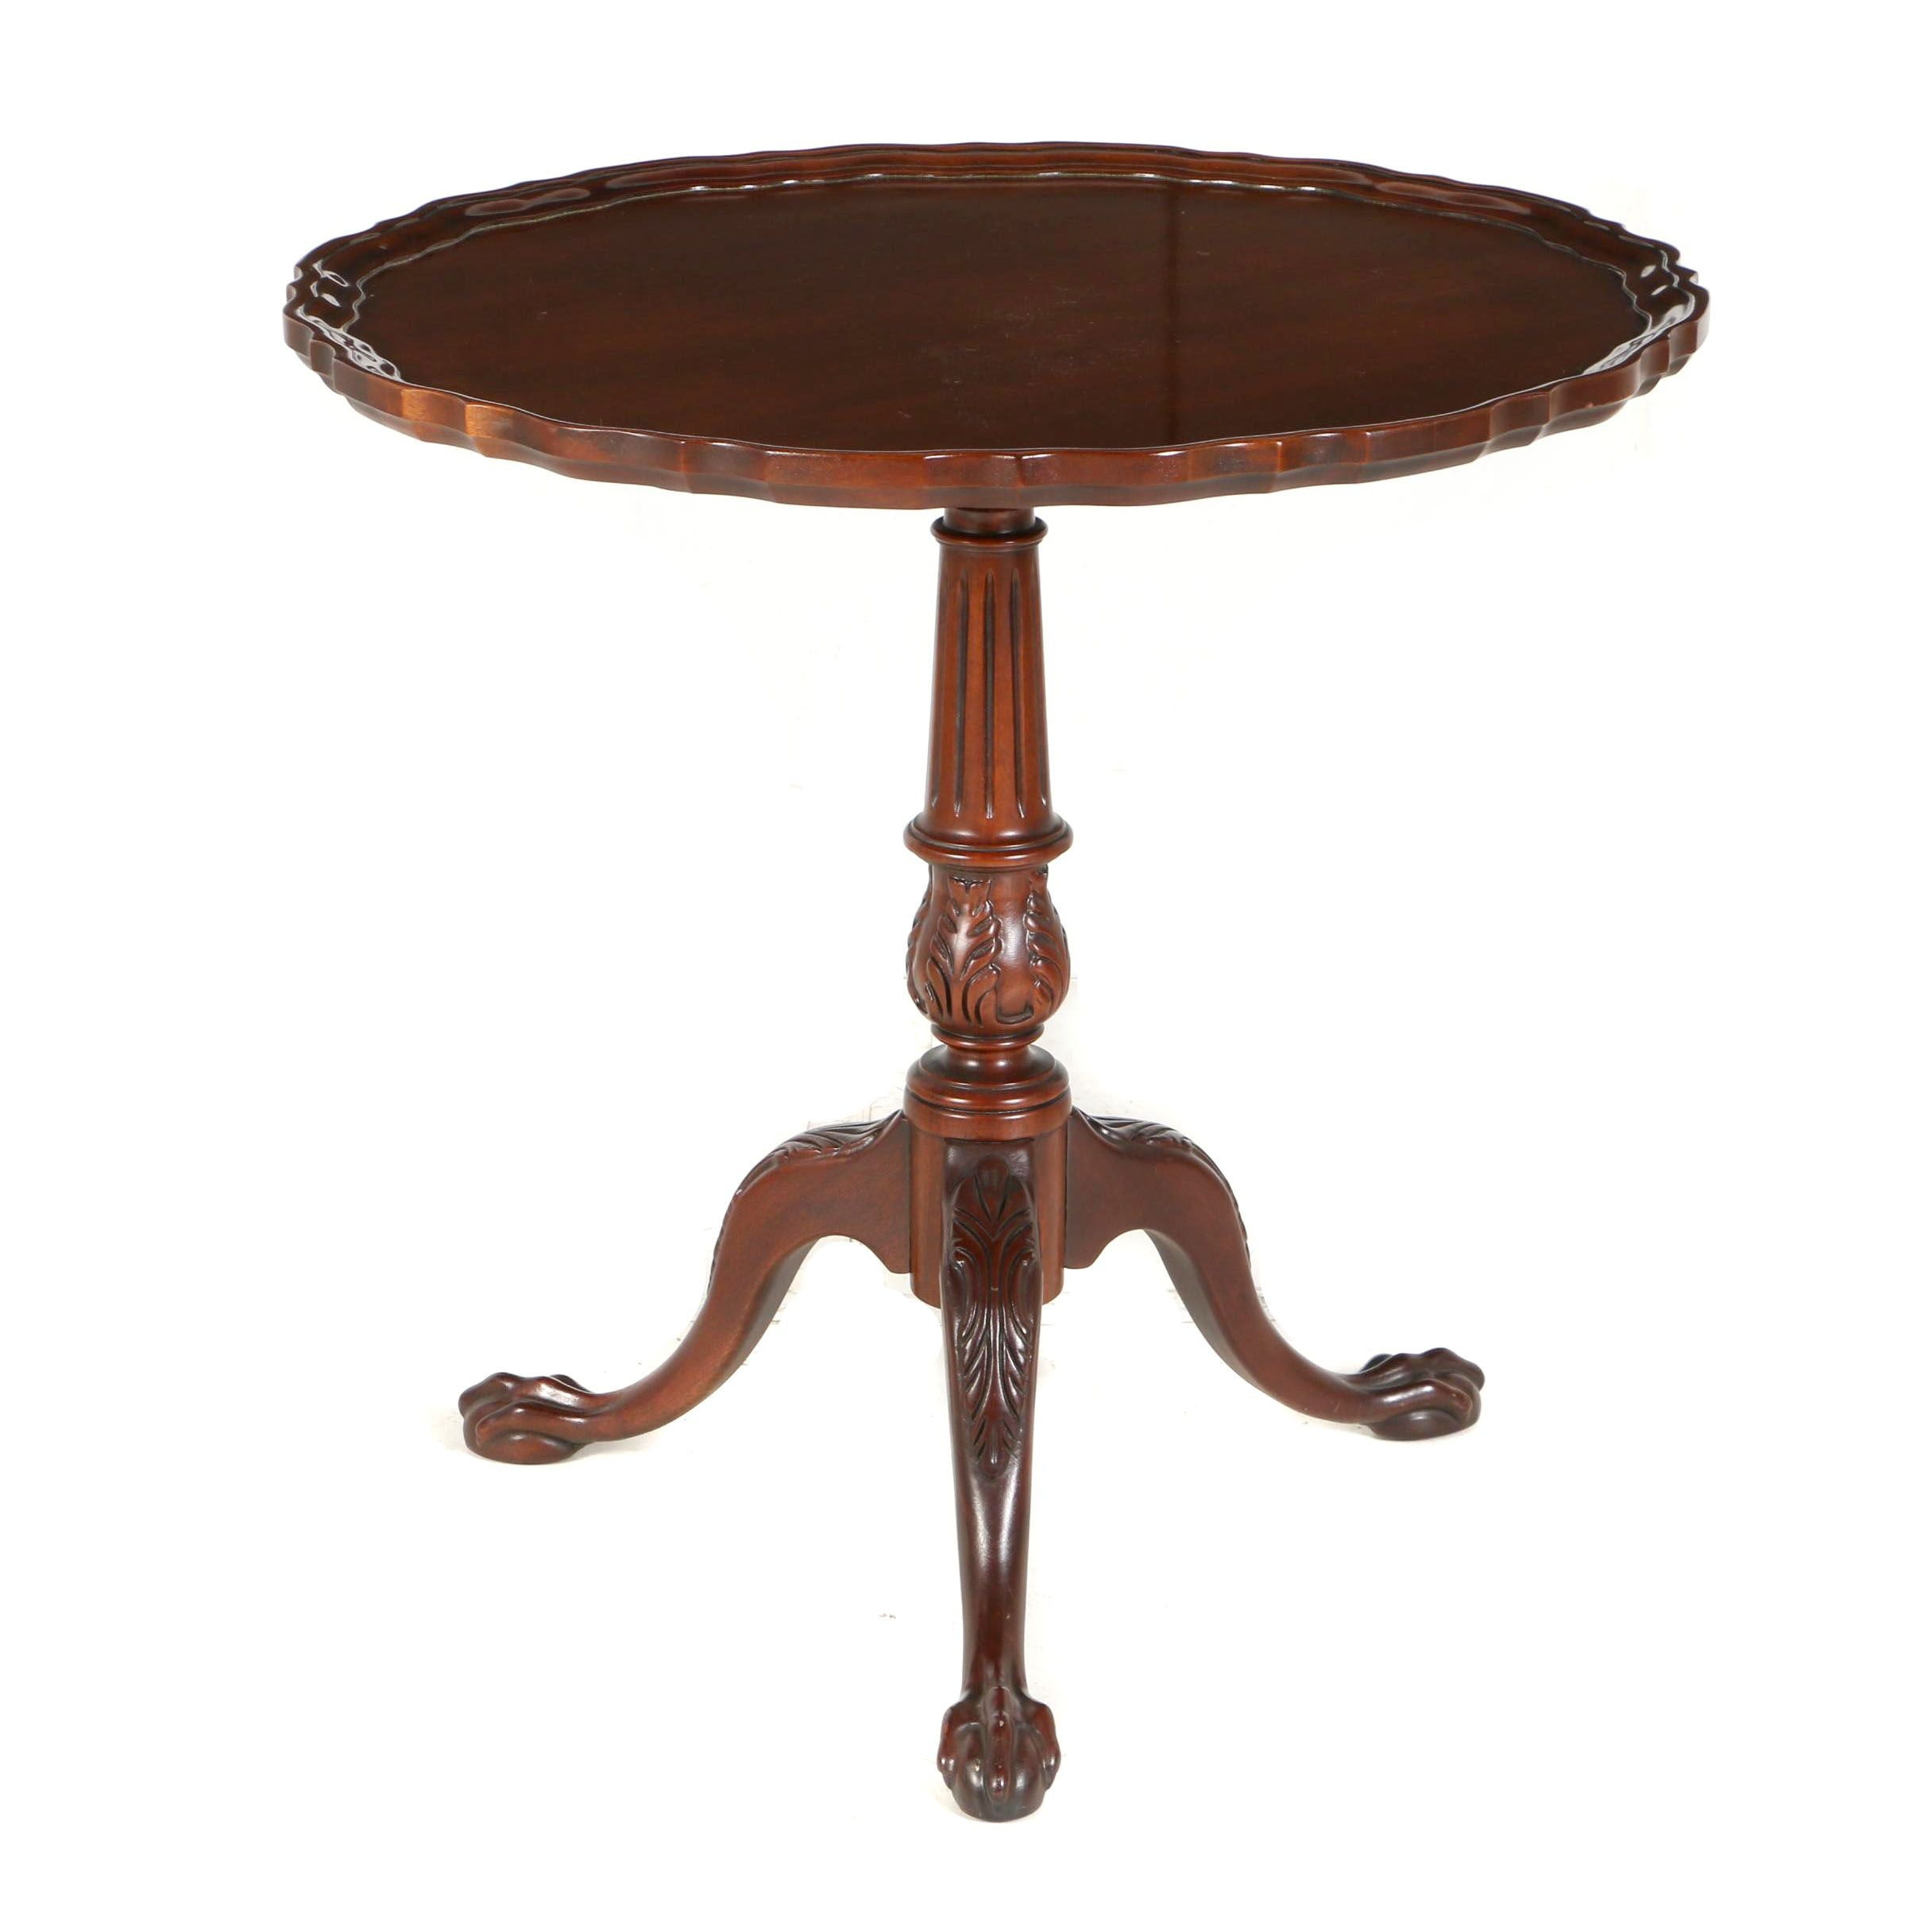 George III Style Mahogany Tilt-Top Tea Table by Hickory Chair, 20th Century